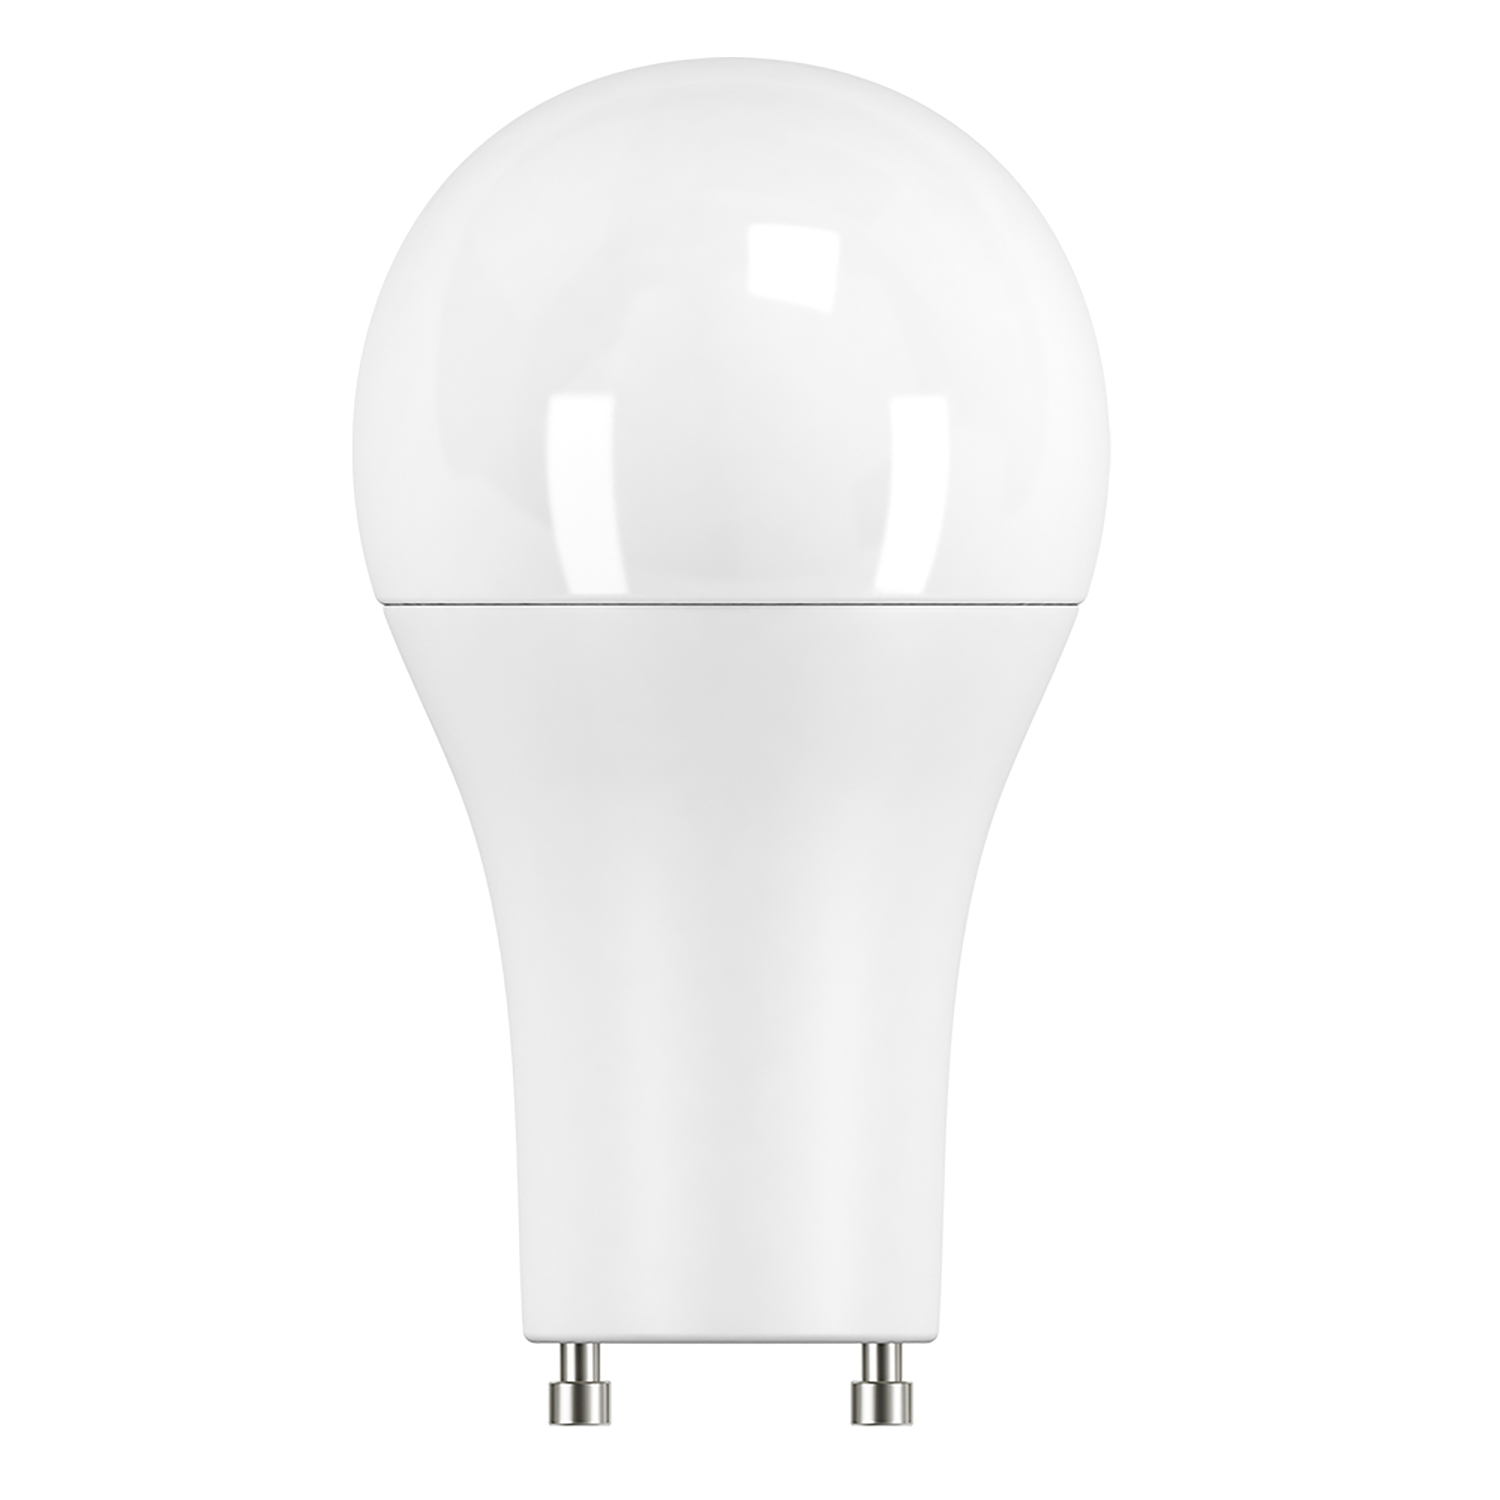 A19FR9/830/OMNI2/GU24/LED 83181 LED A19 9.5W 3000K GU24 NON-DIMMABLE OMNIDIRECTIONAL ProLED